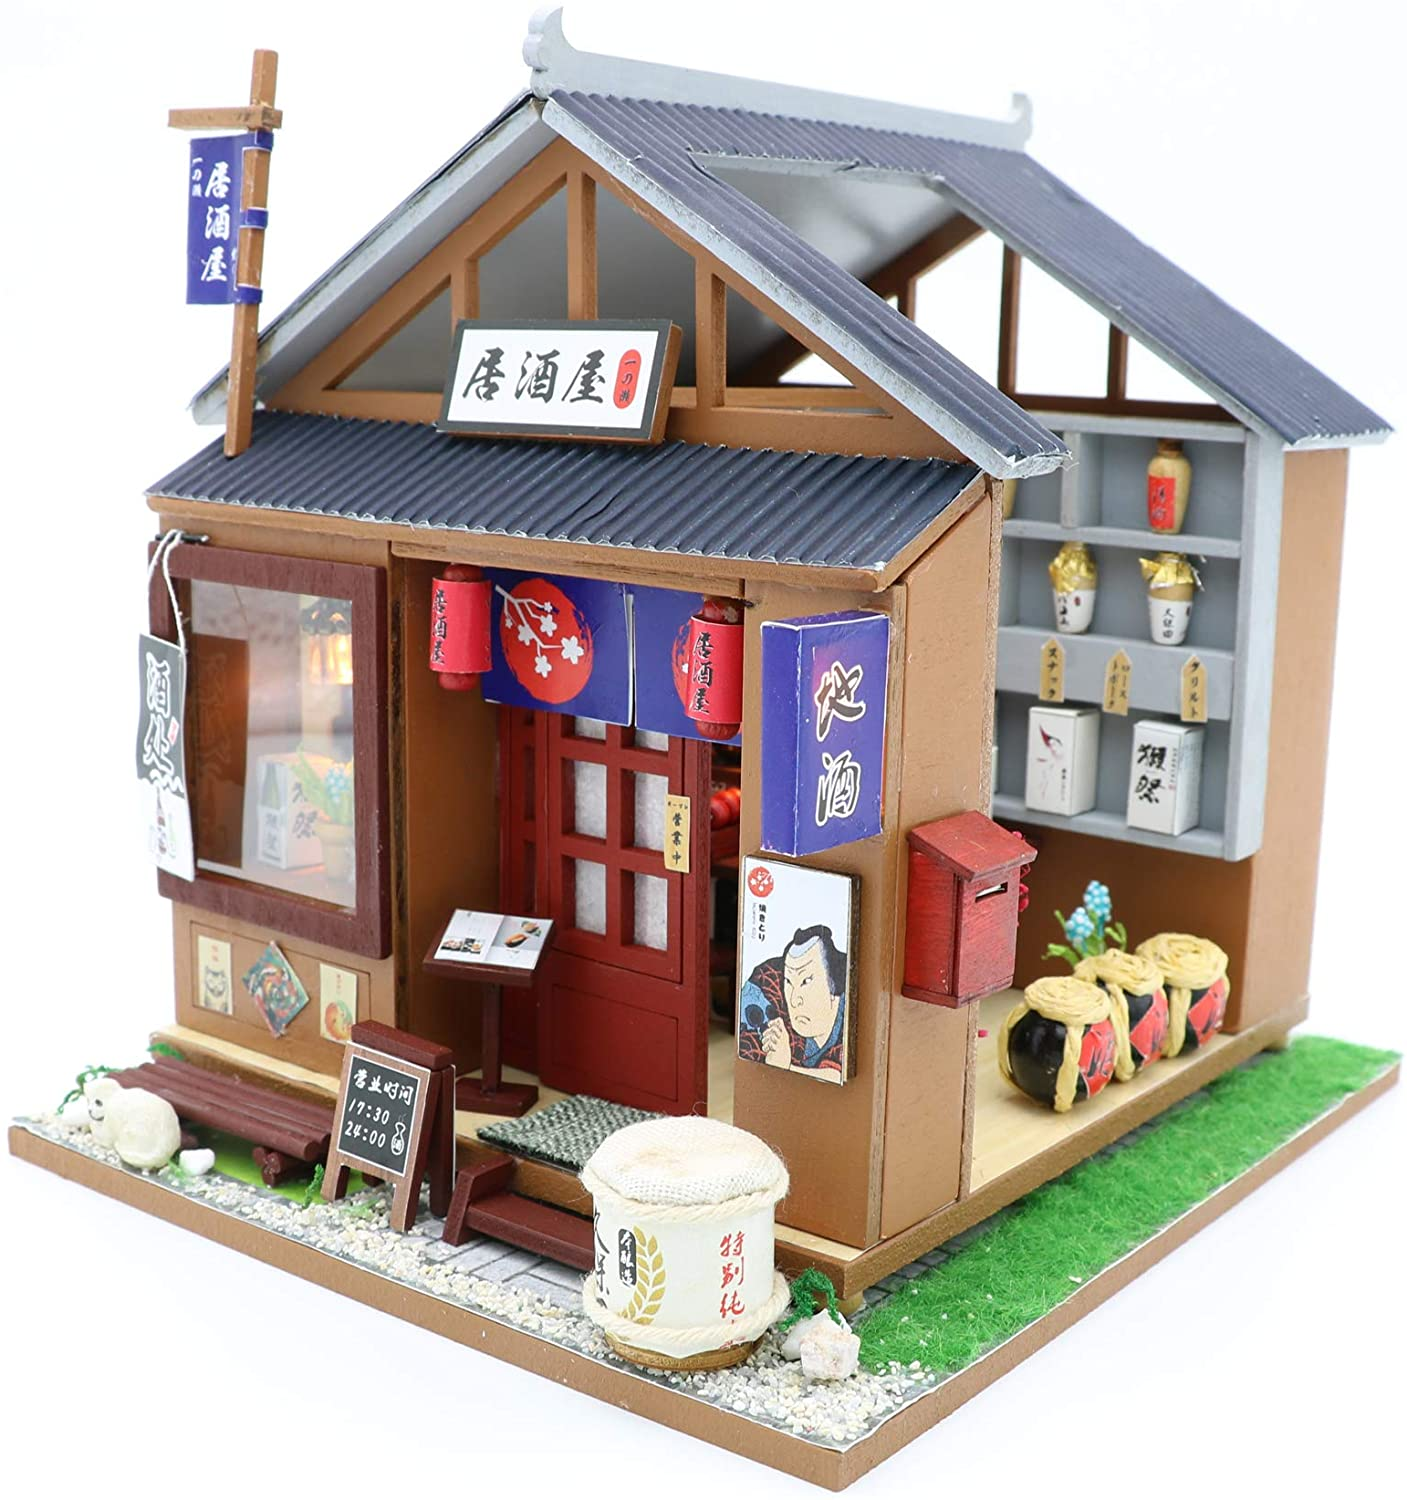 1:24 Cool Beans Boutique Miniature DIY Dollhouse Kit Wooden Japanese Izakaya Bar & Grill Bistro with Dust Cover (English Assembly Instructions) (Japanese Izakaya (Bar & Grill))